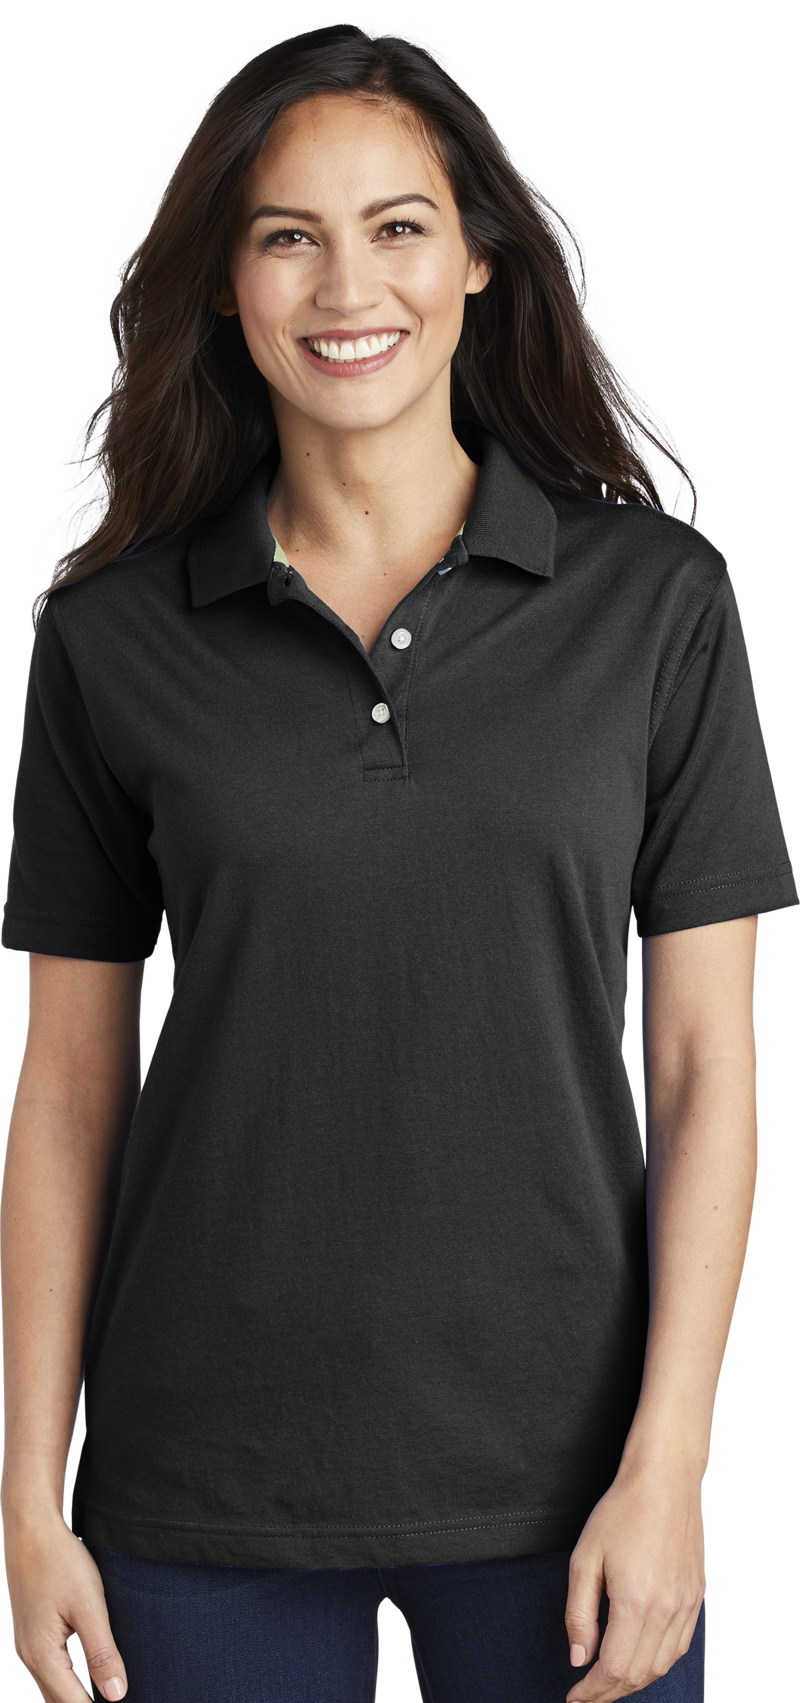 Queensboro LIFT Embroidered Women's Luxury Hybrid Jersey Polo